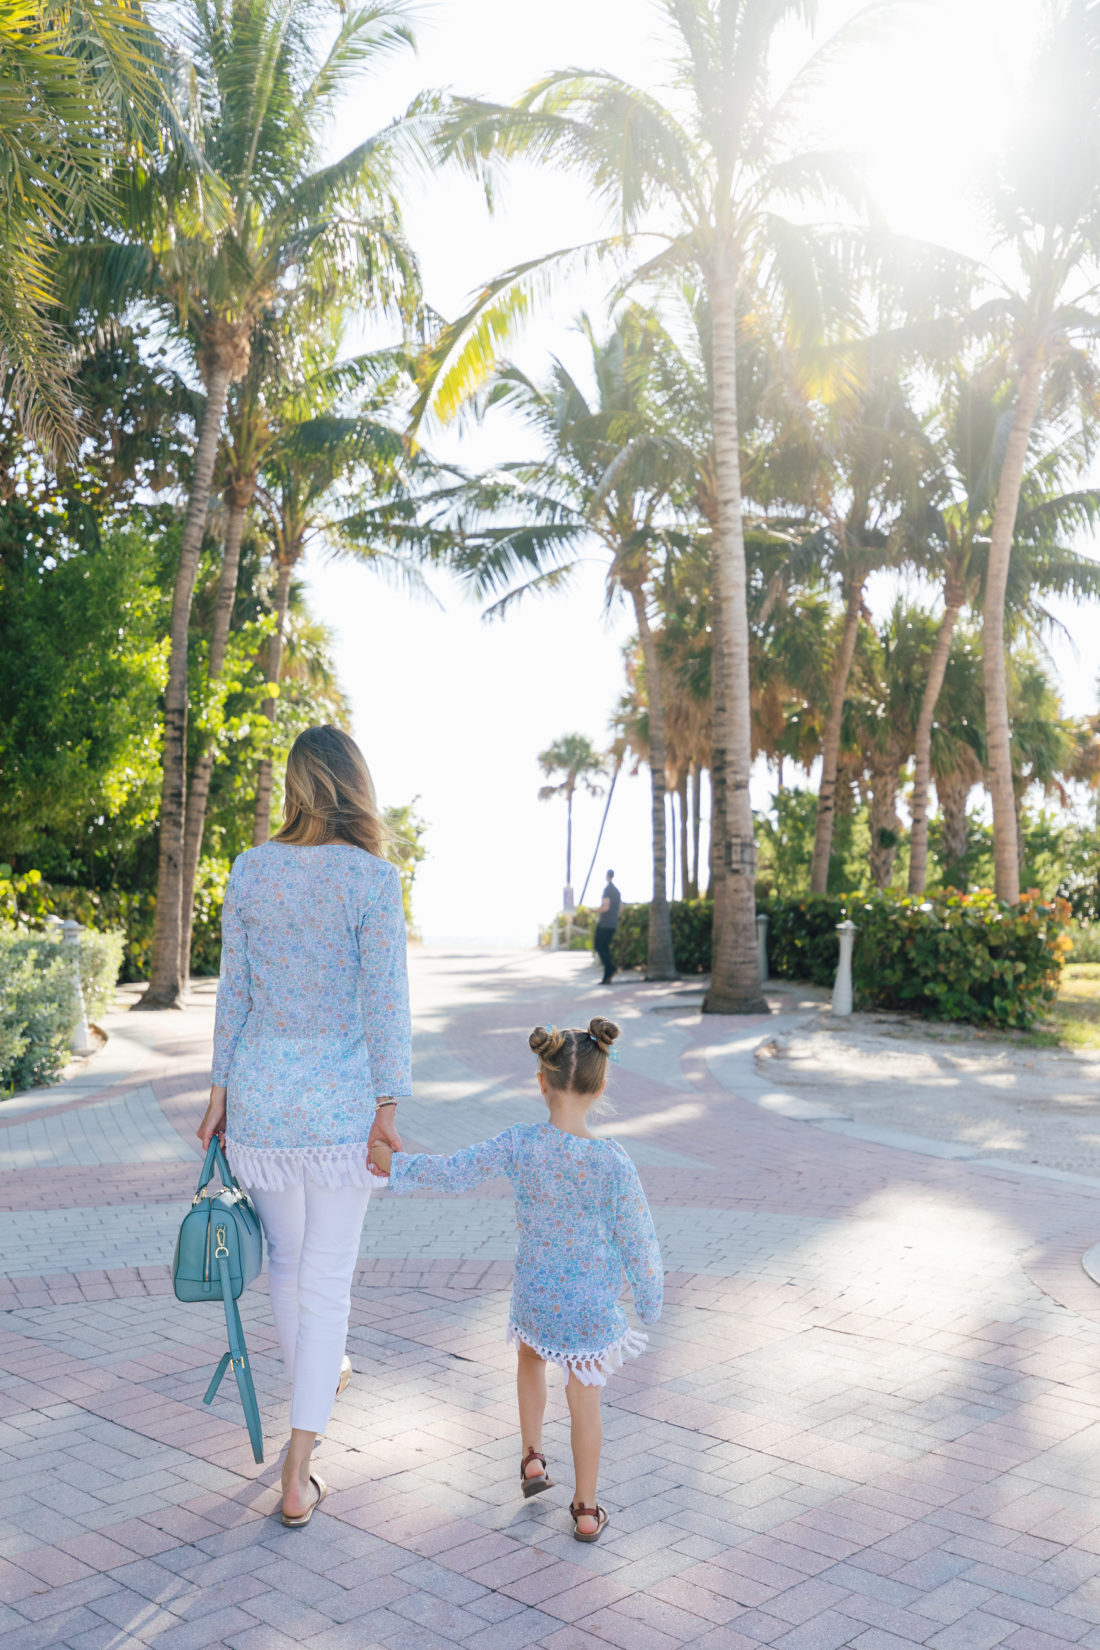 Eva Amurri Martino and Marlowe Martino walk together towards the beach in Miami wearing matching floral fringe tunics from the Happily. Eva After x Masala Baby capsule collection